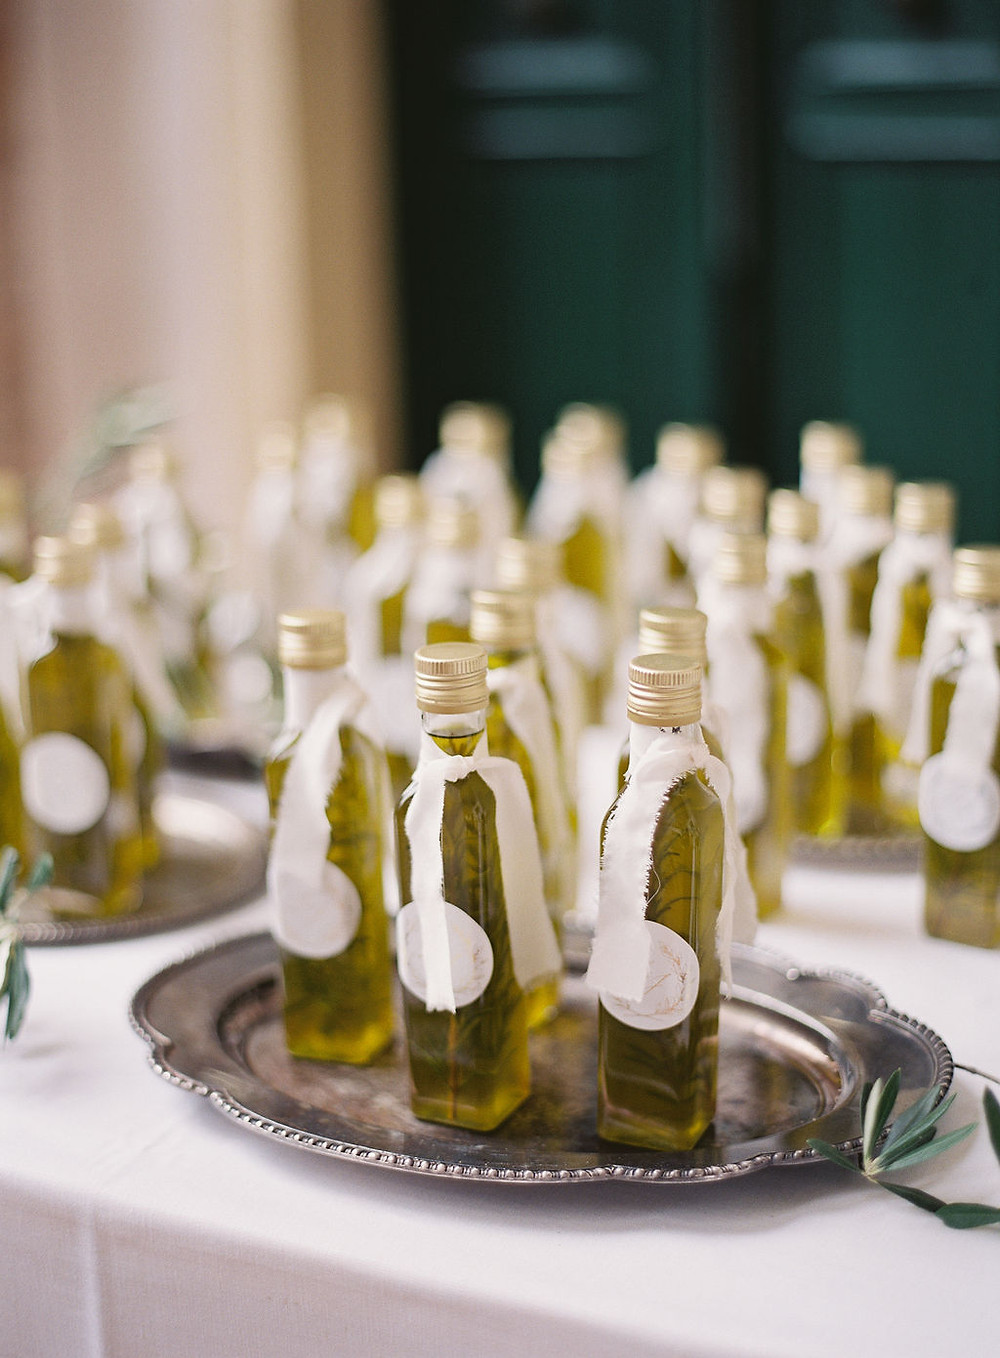 Oliveoil  guestgift for wedding in Tuscany